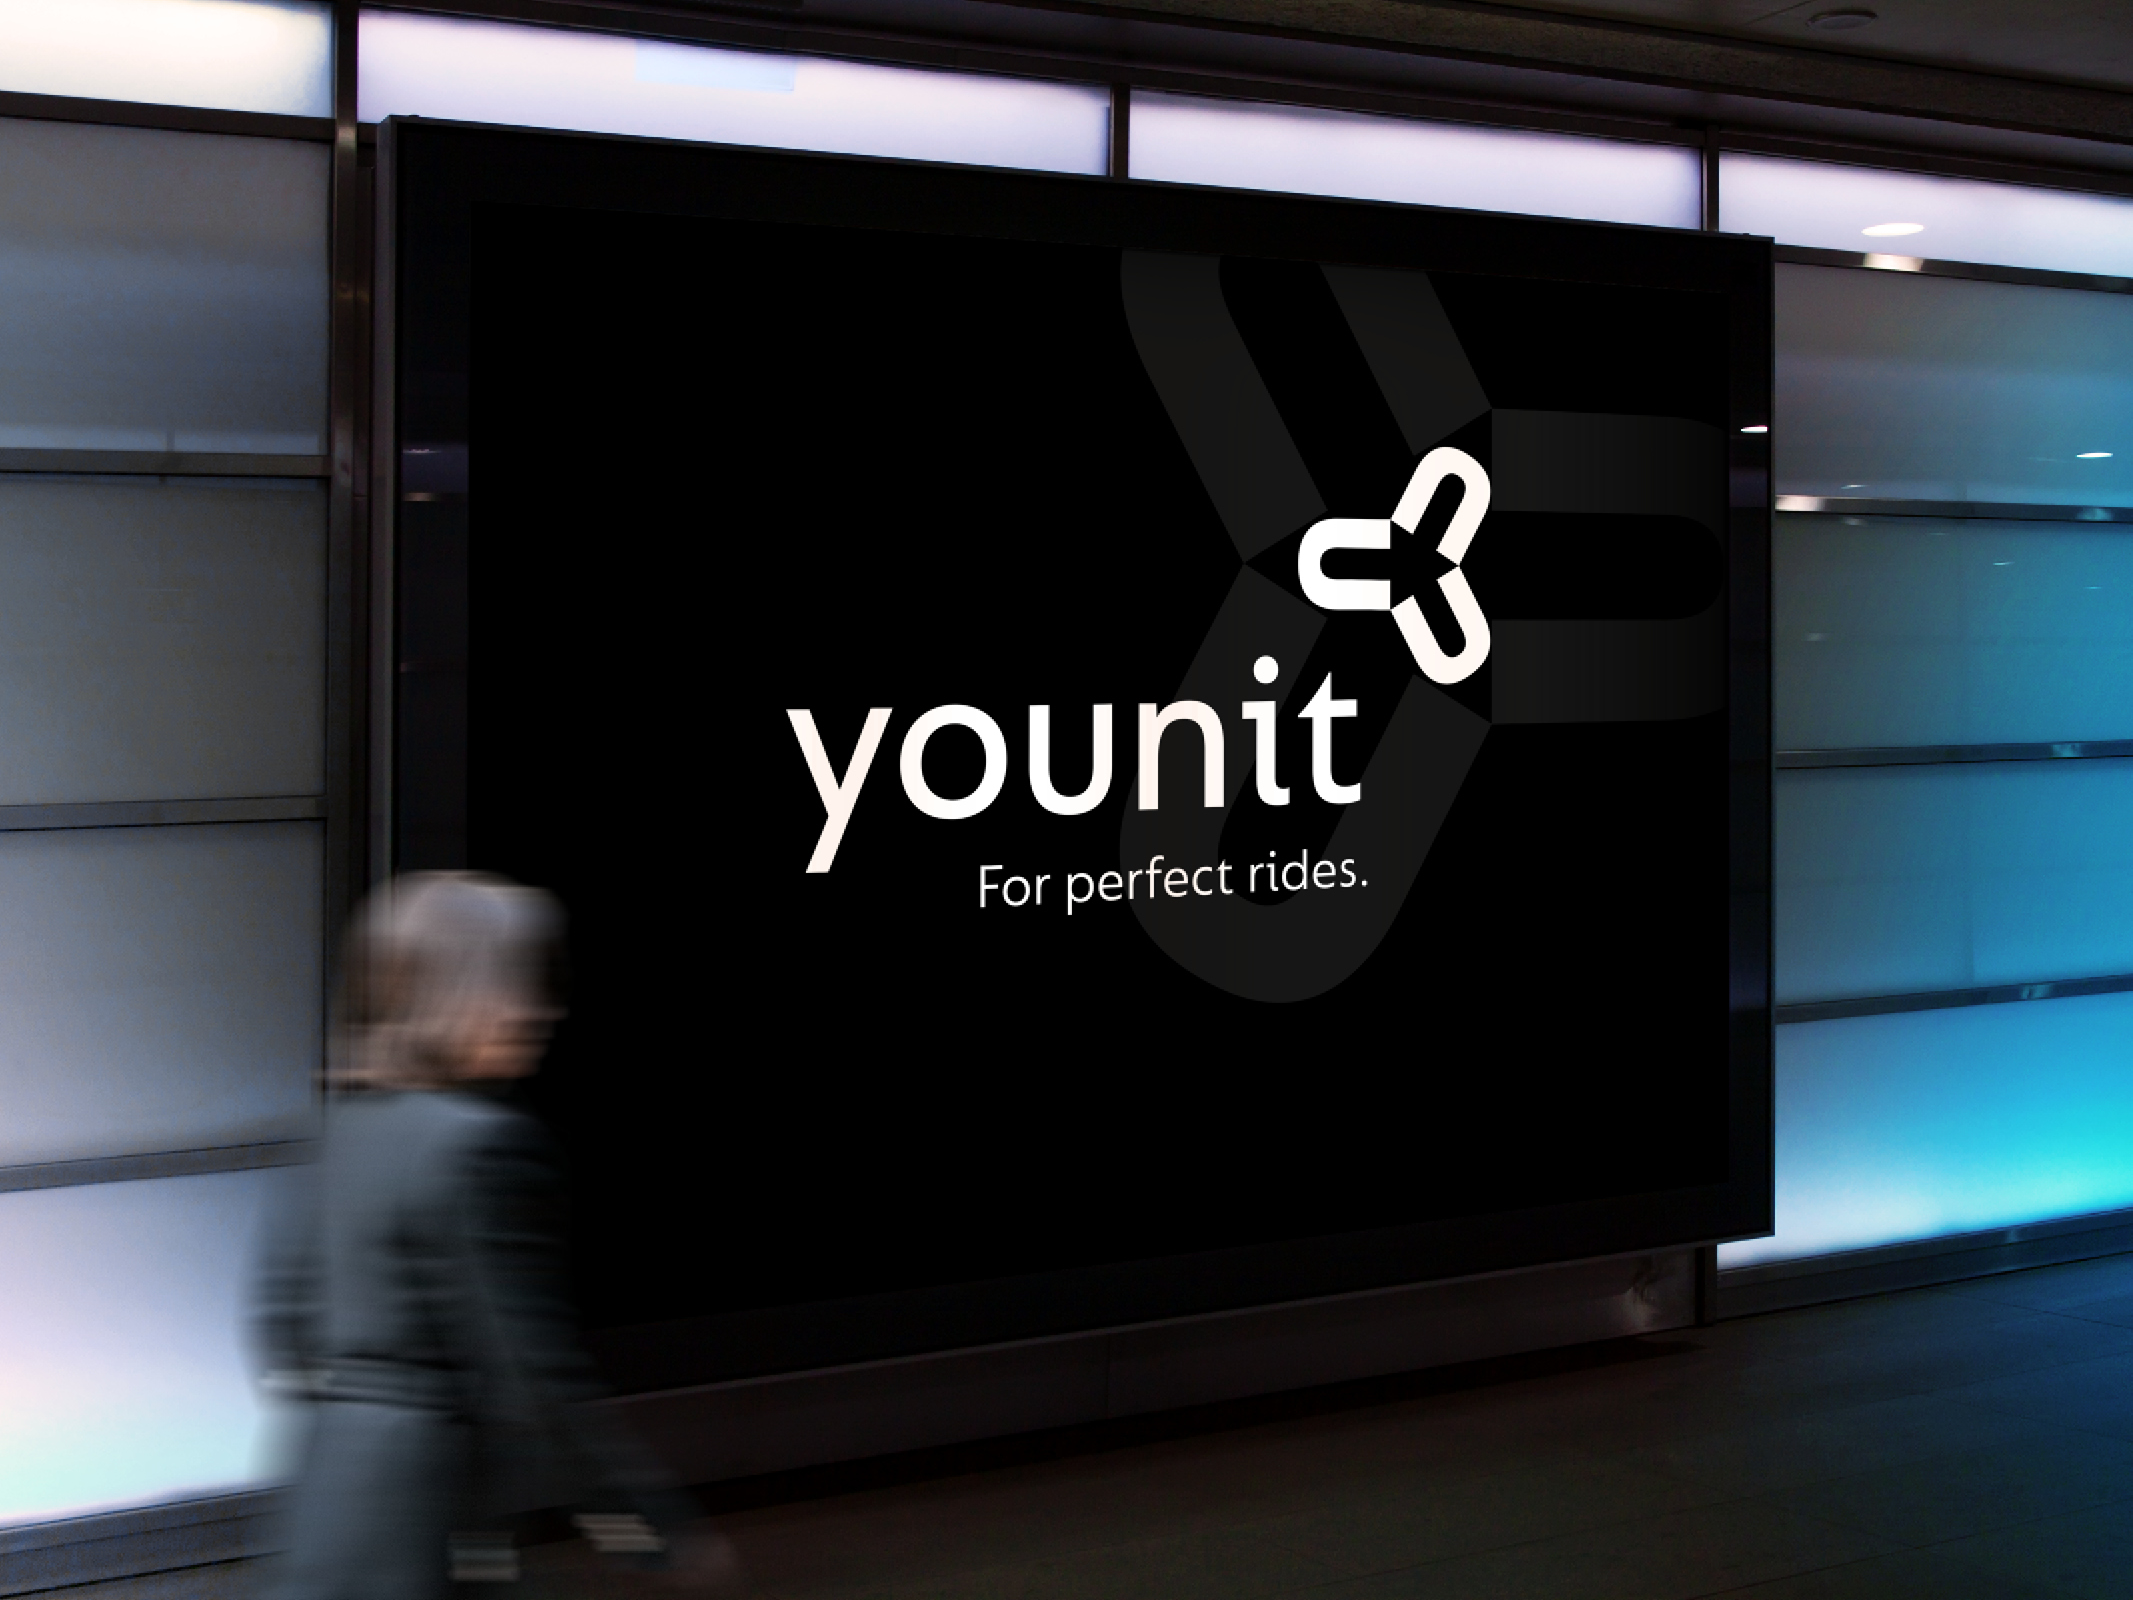 Younit